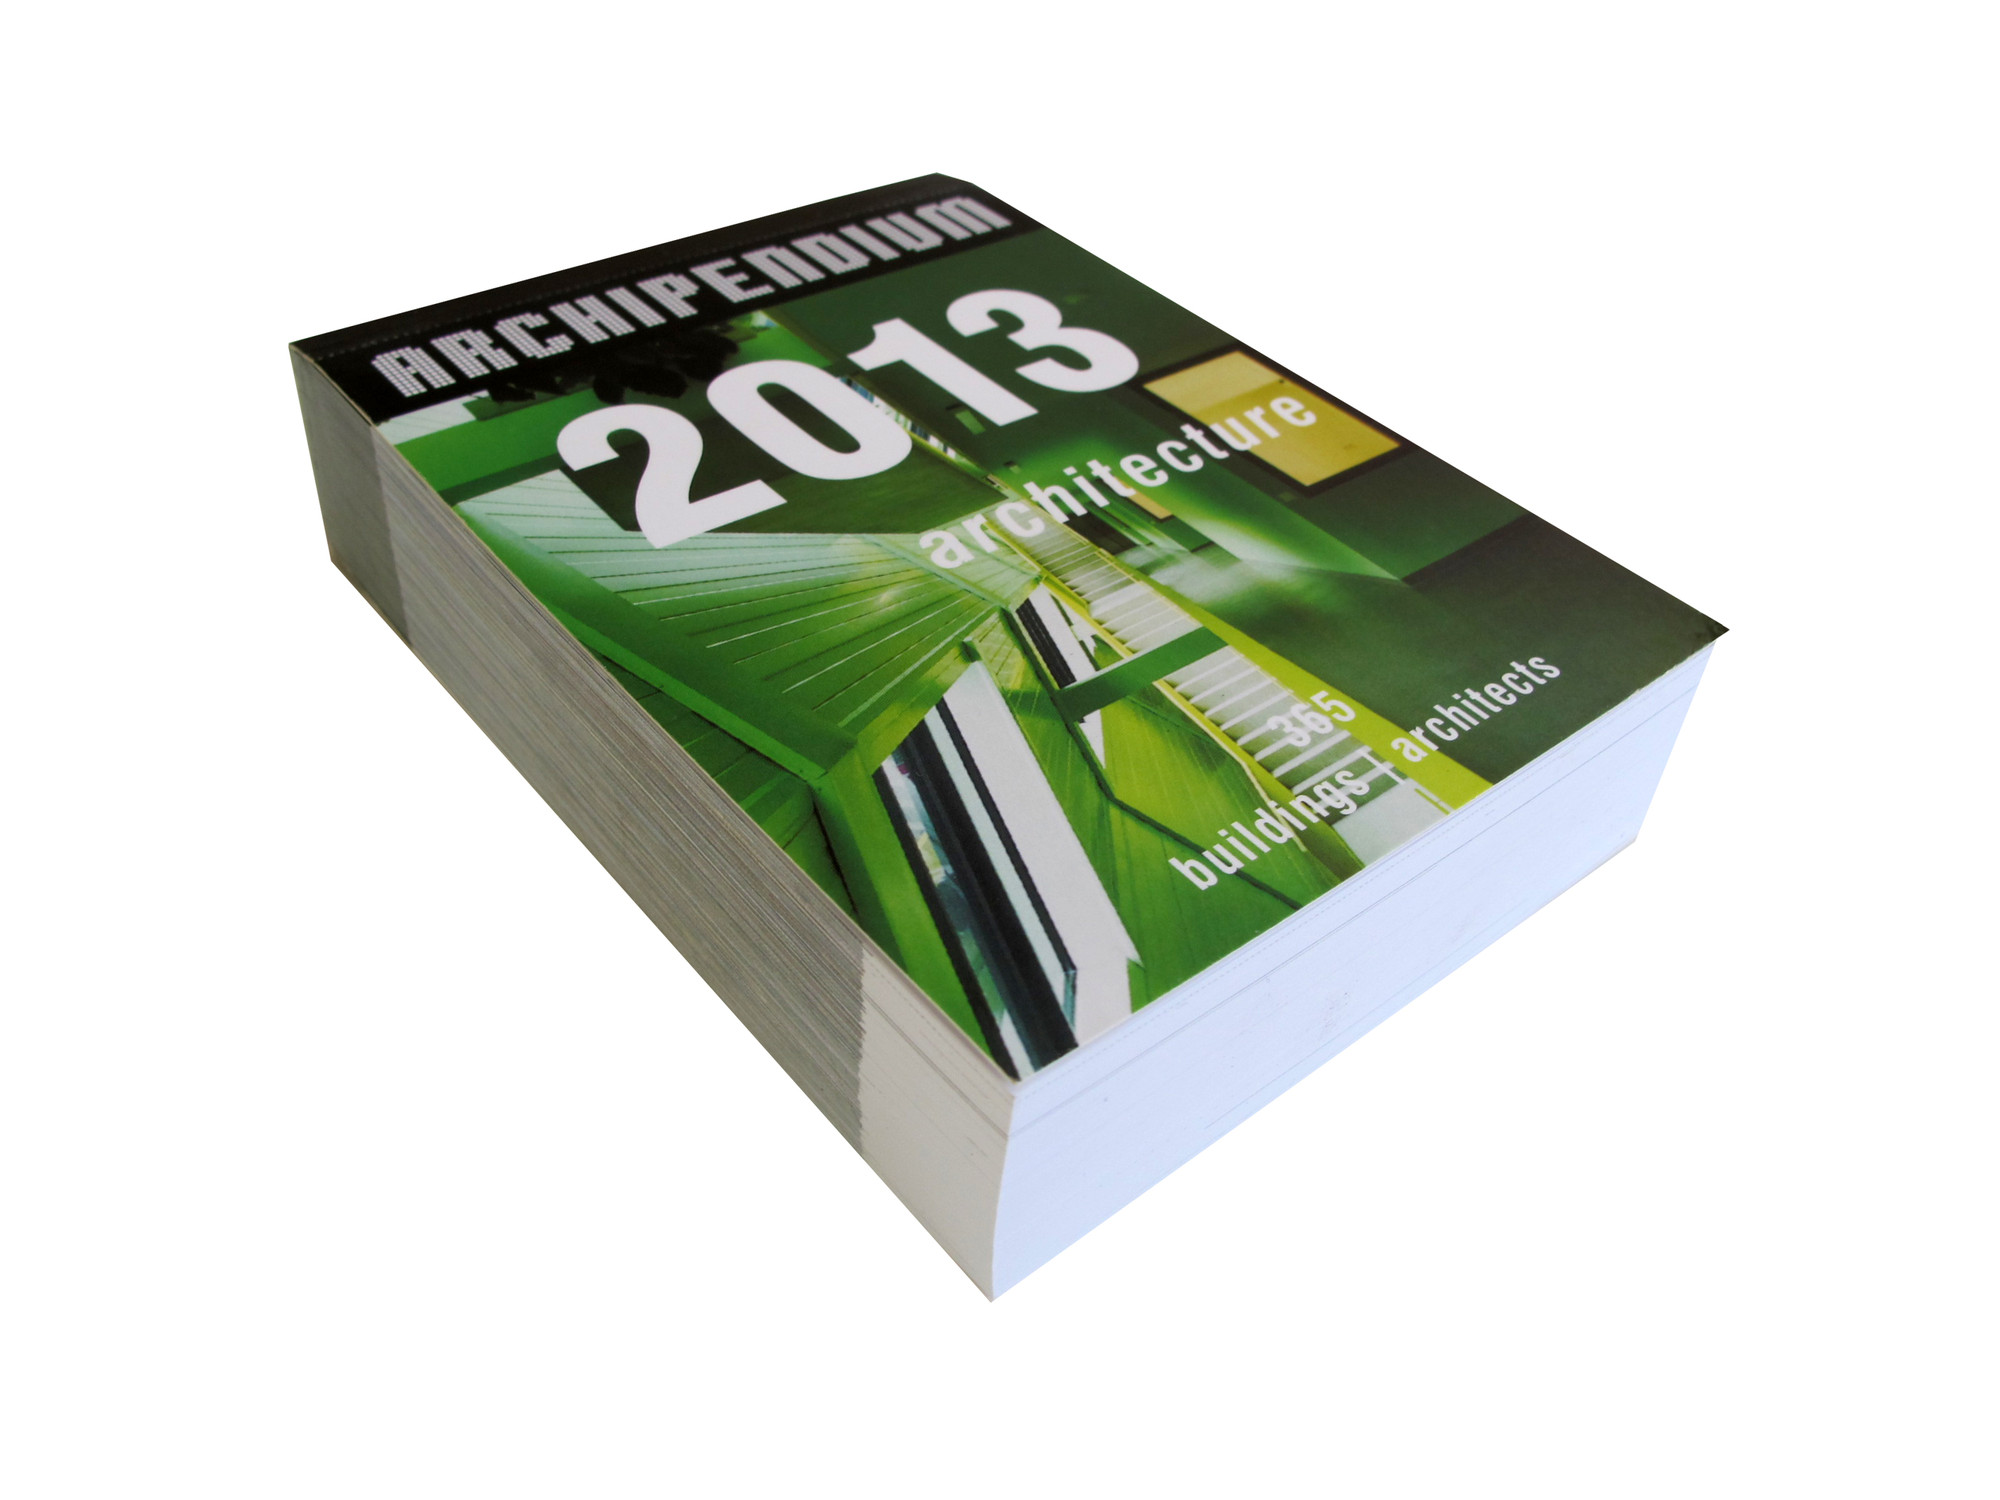 2013 ARCHIPEDIUM Architectural Calendar, Courtesy of archimap publishers